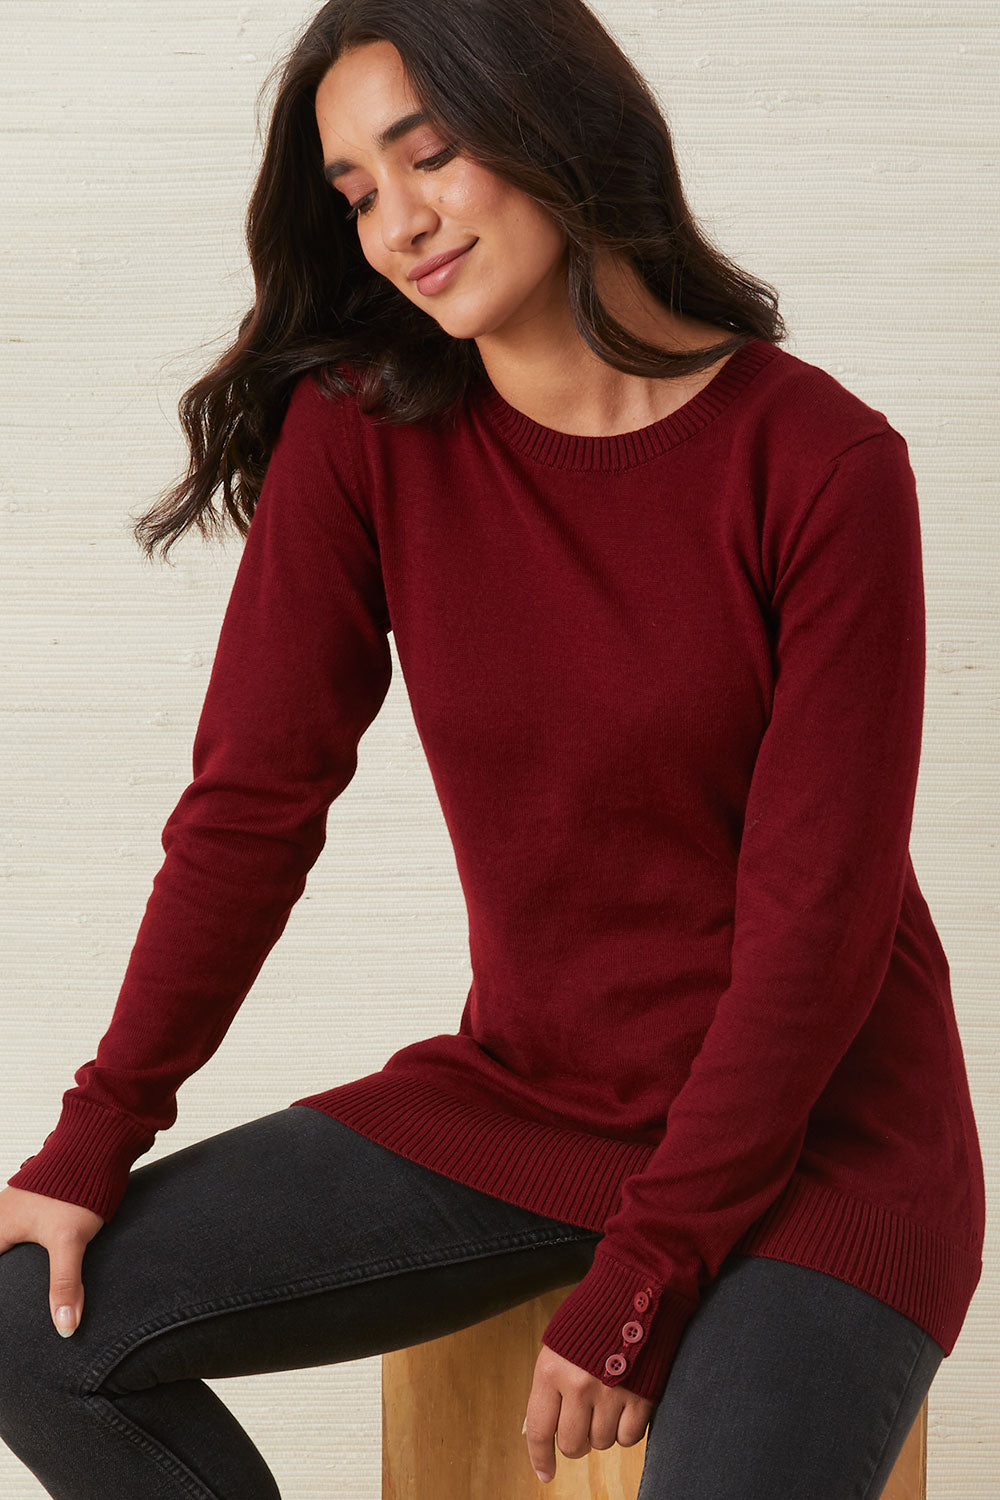 fair-indigo-womens-fair-trade-cotton-alpaca-crew-neck-sweater